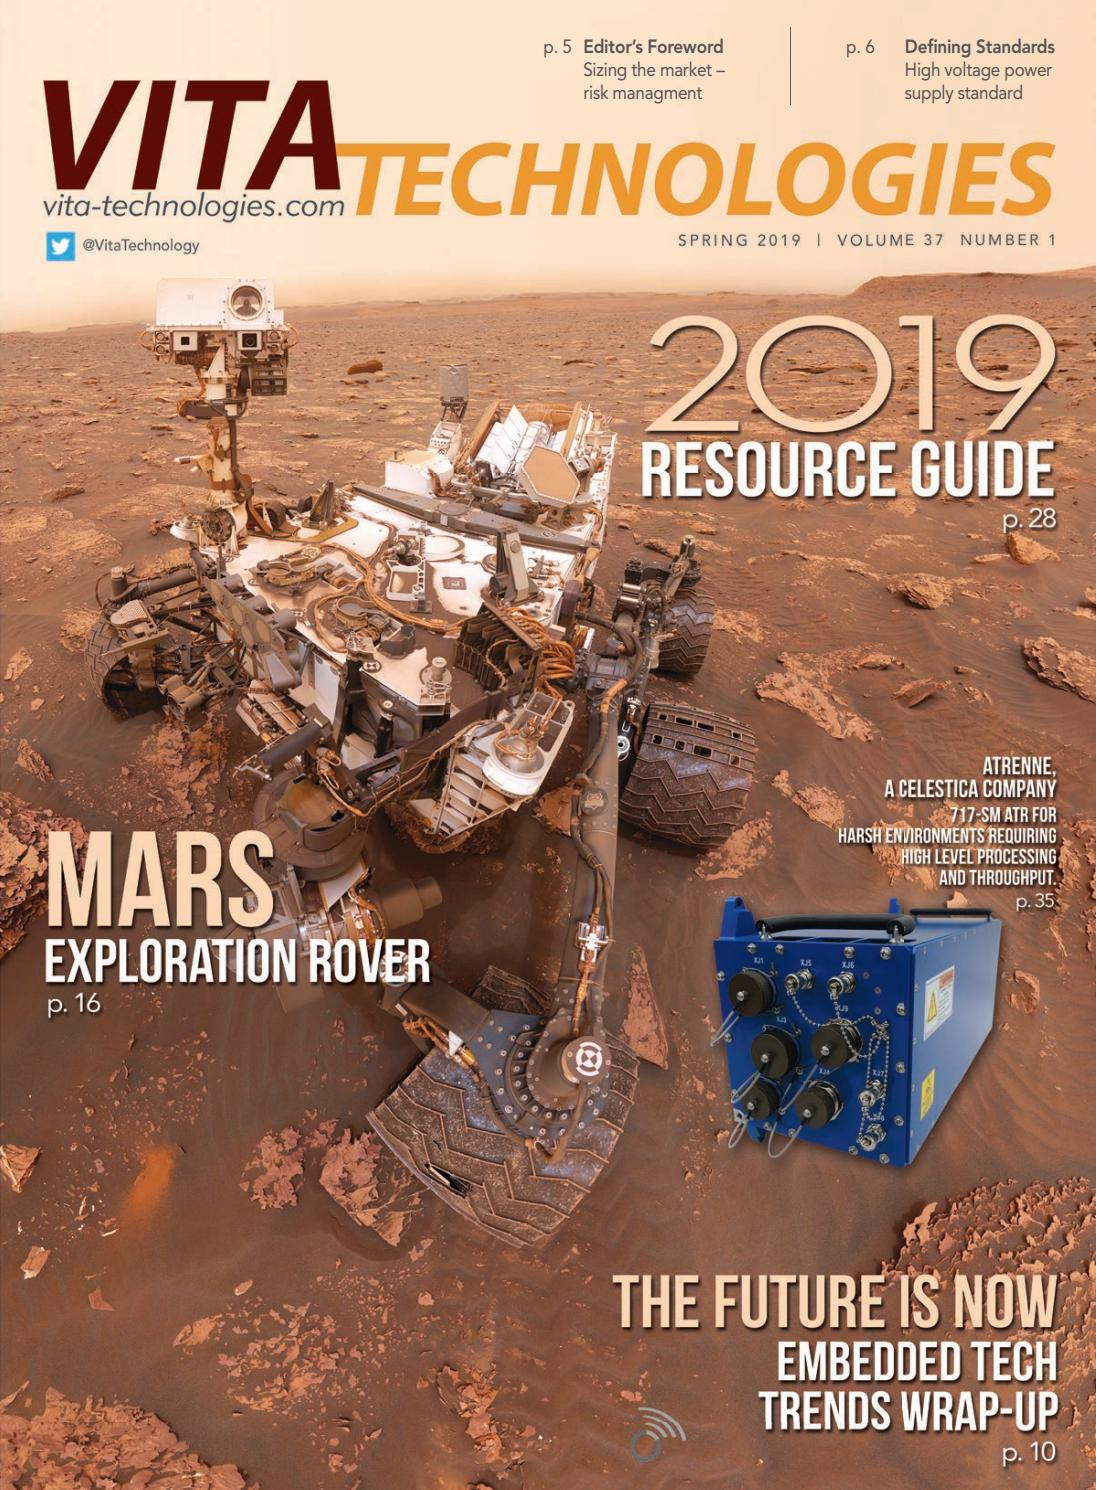 VITA Technologies Spring 2019 with Resource Guide by OpenSystems